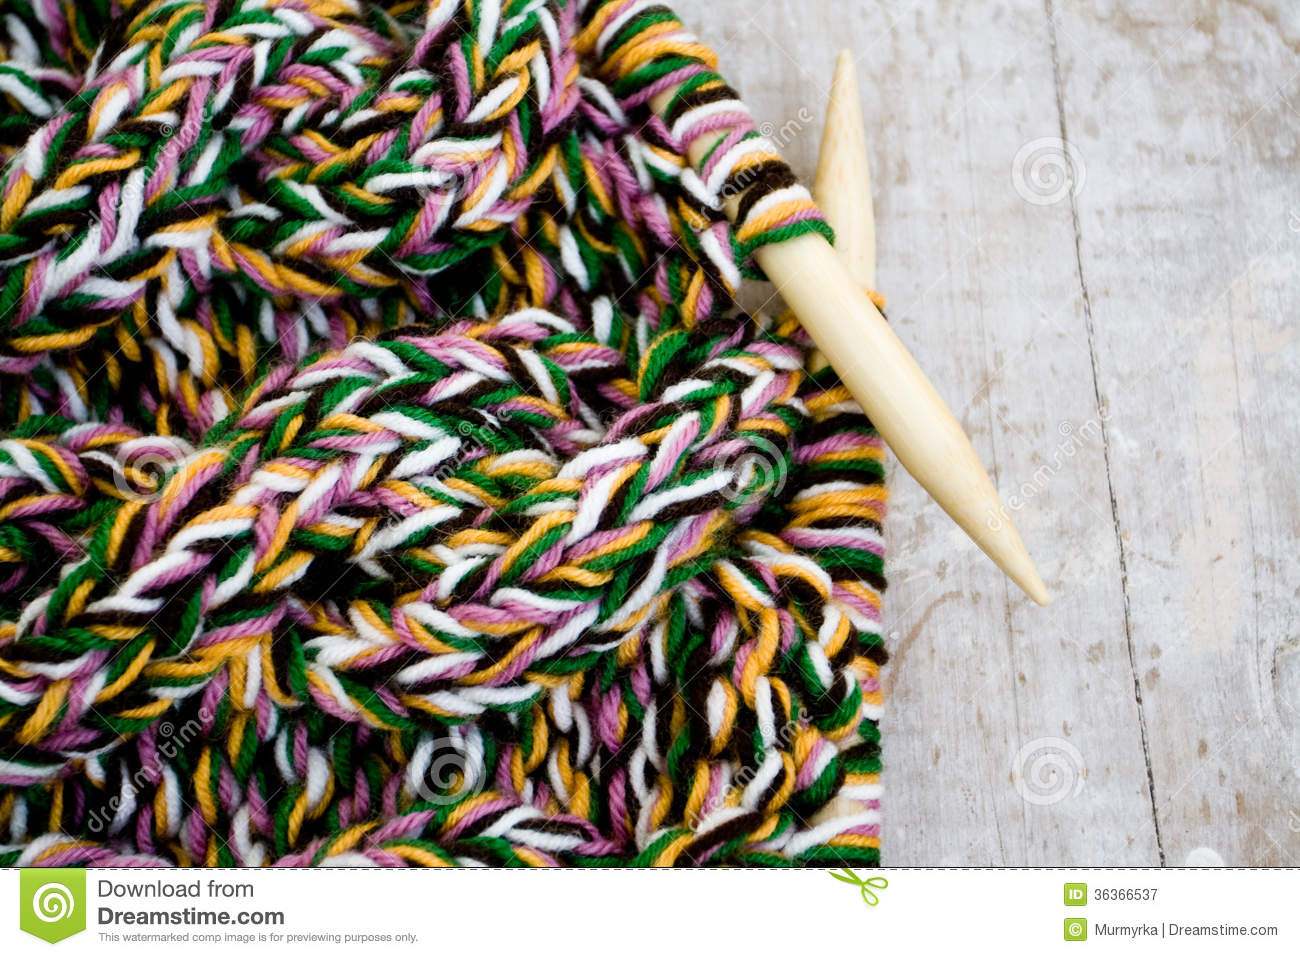 knitting needles and yarn on wooden background royalty